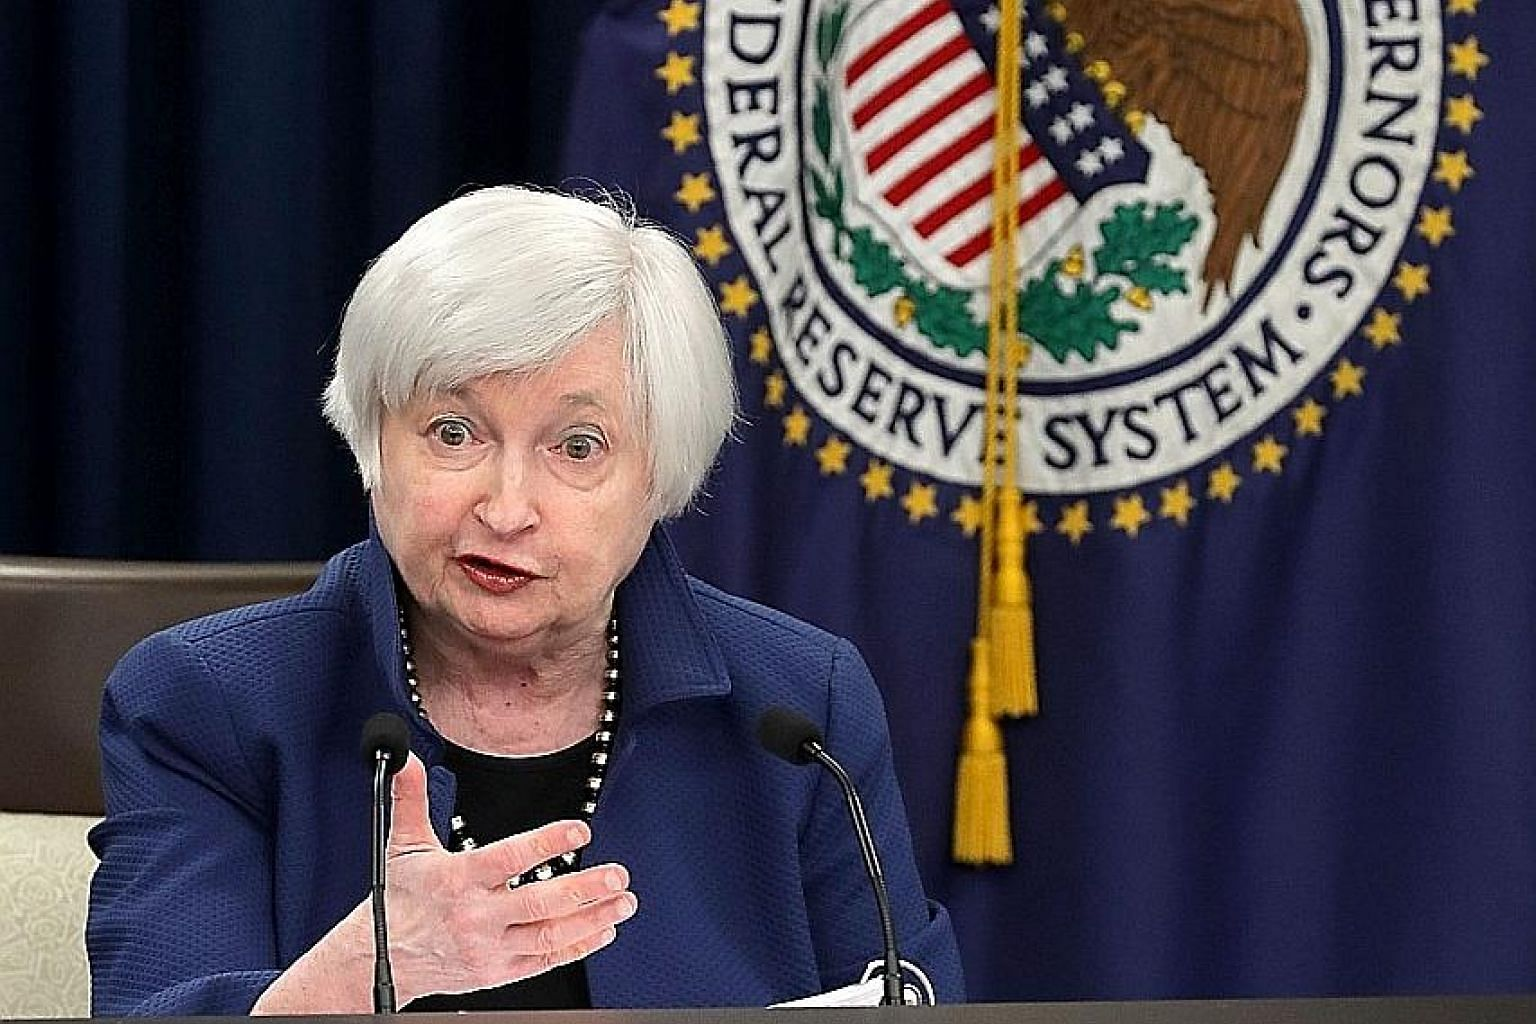 US Federal Reserve chairman Janet Yellen speaking to the media in Washington on Wednesday after the Fed raised interest rates by one quarter of a percentage point, the second hike in three months.